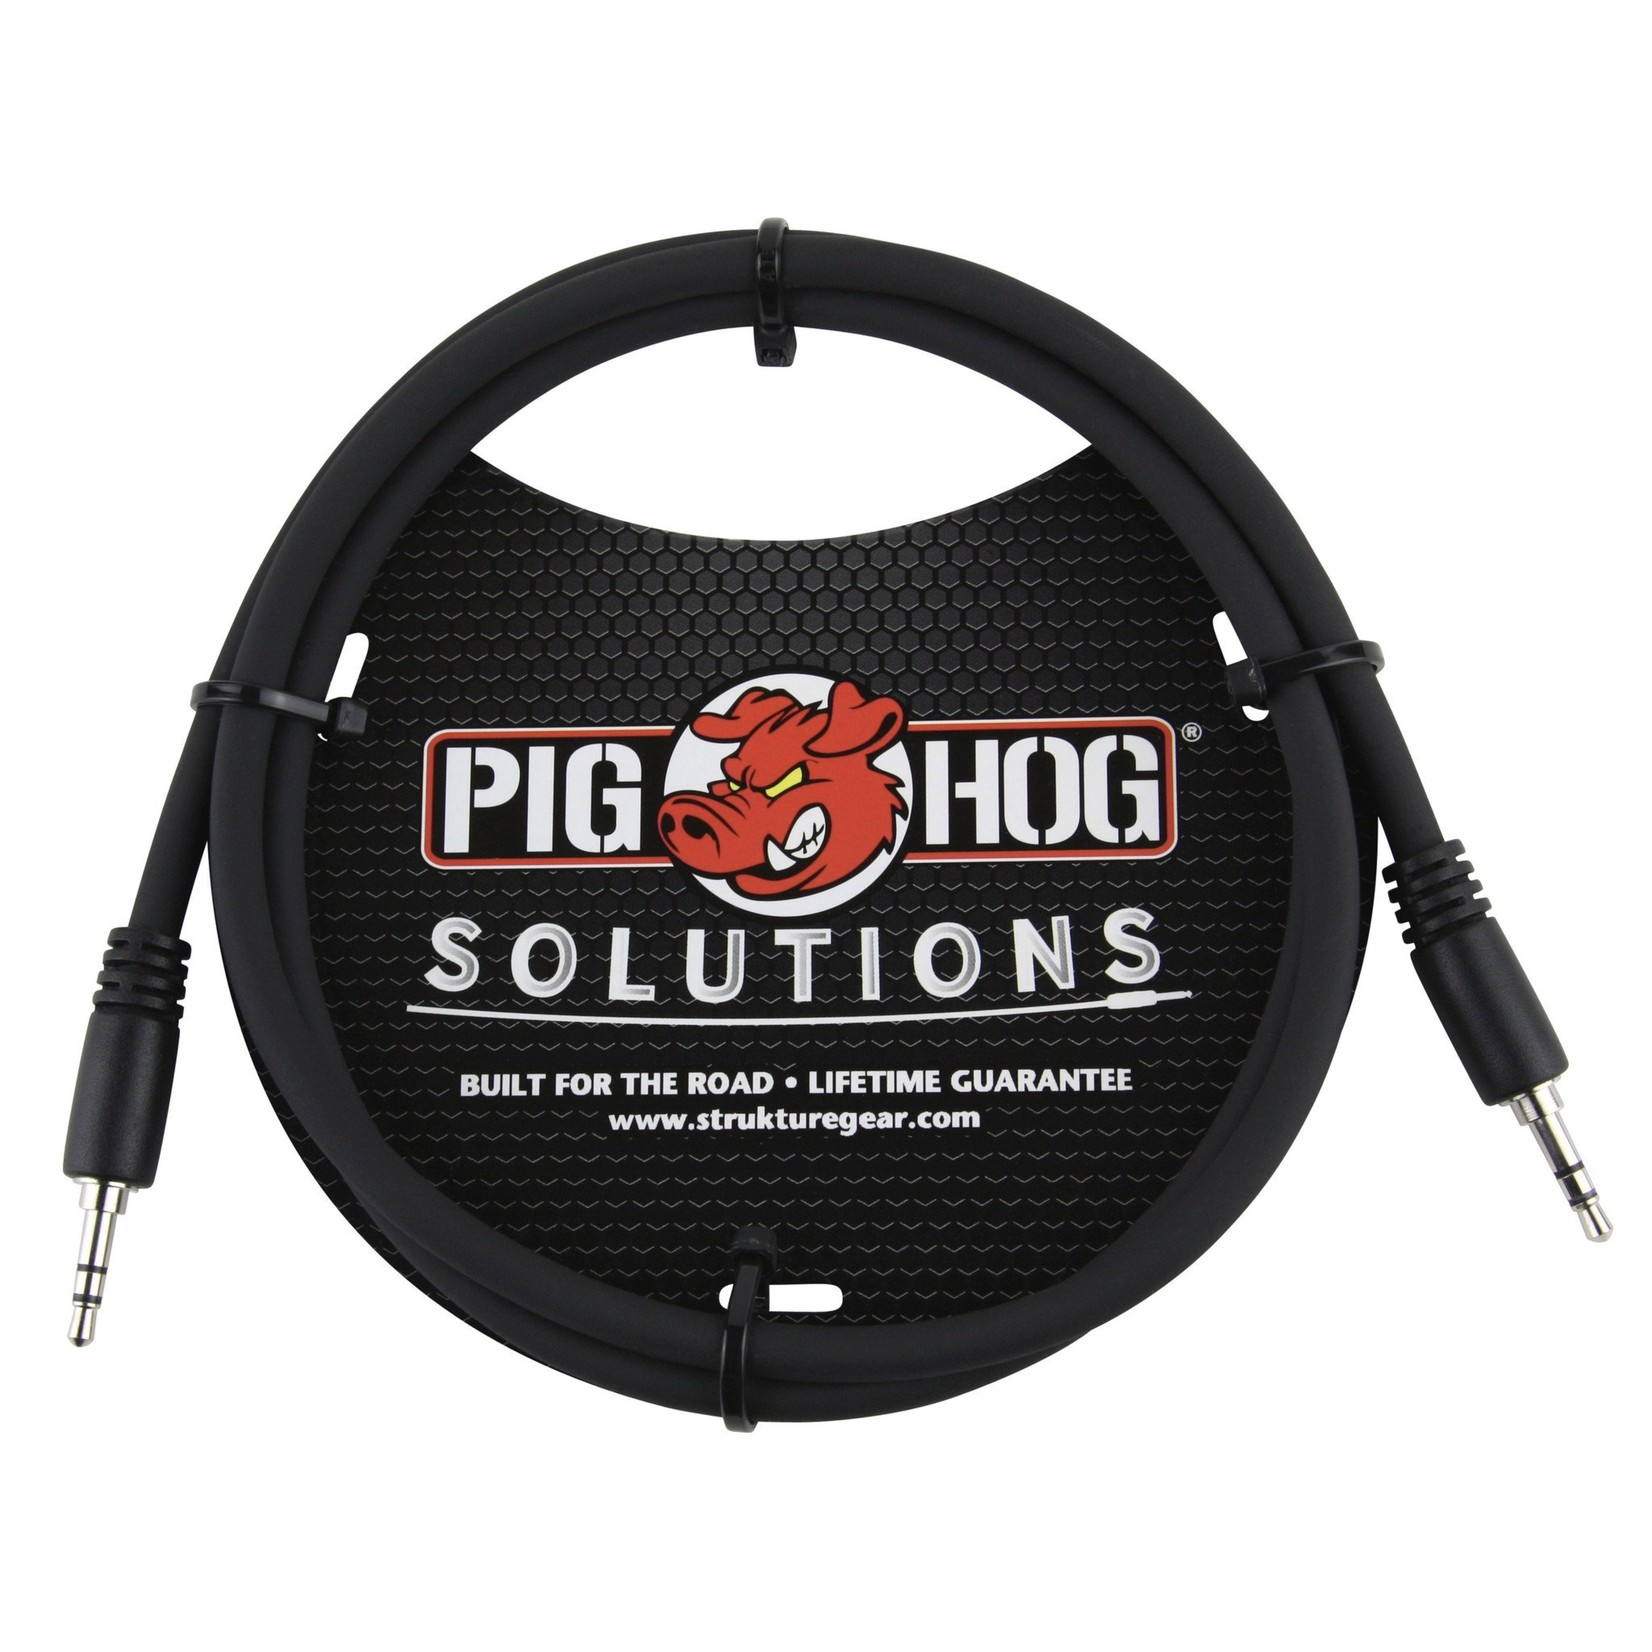 Pig Hog Pig Hog Solutions 3.5mm TRS to 3.5mm TRS, 3 ft (PX-T3503)